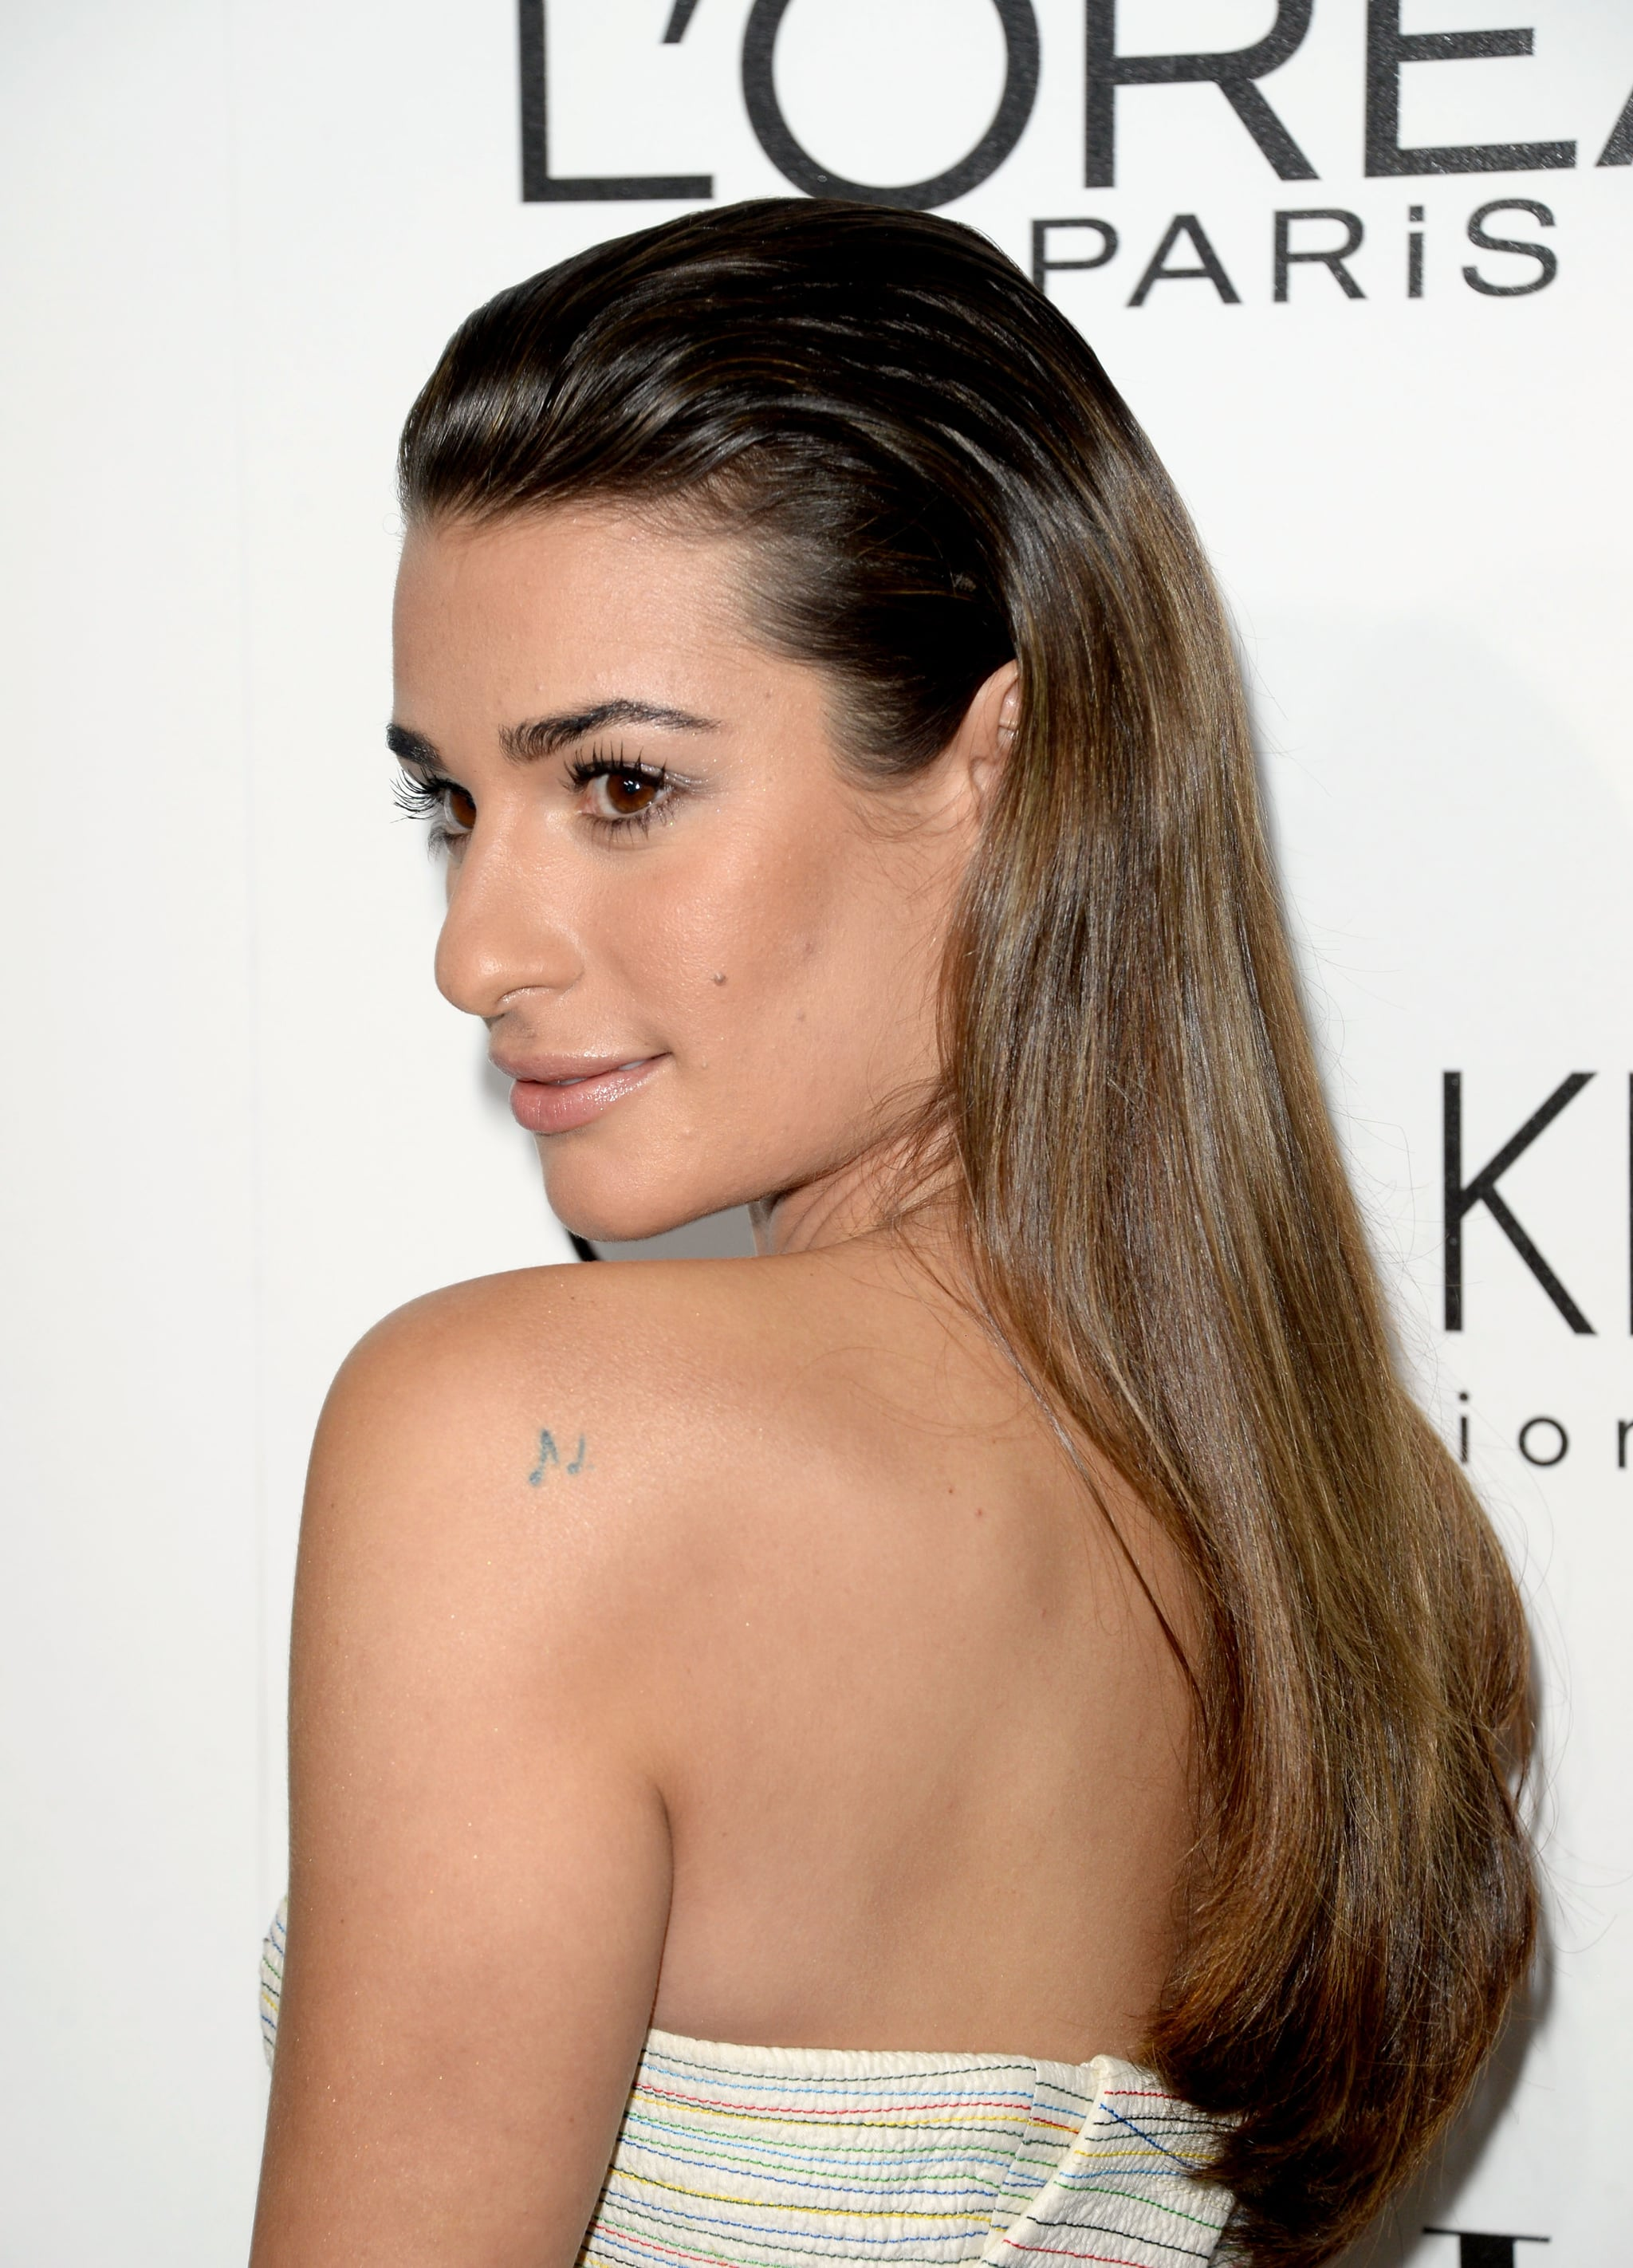 Lea Michele tried on the two-textured hairstyle seen so often on the runways, and with a bronzed makeup palette, this look screams Summer (which is only six months away). Use Visible Lift Color Lift Blush ($13) to get a similar glow.